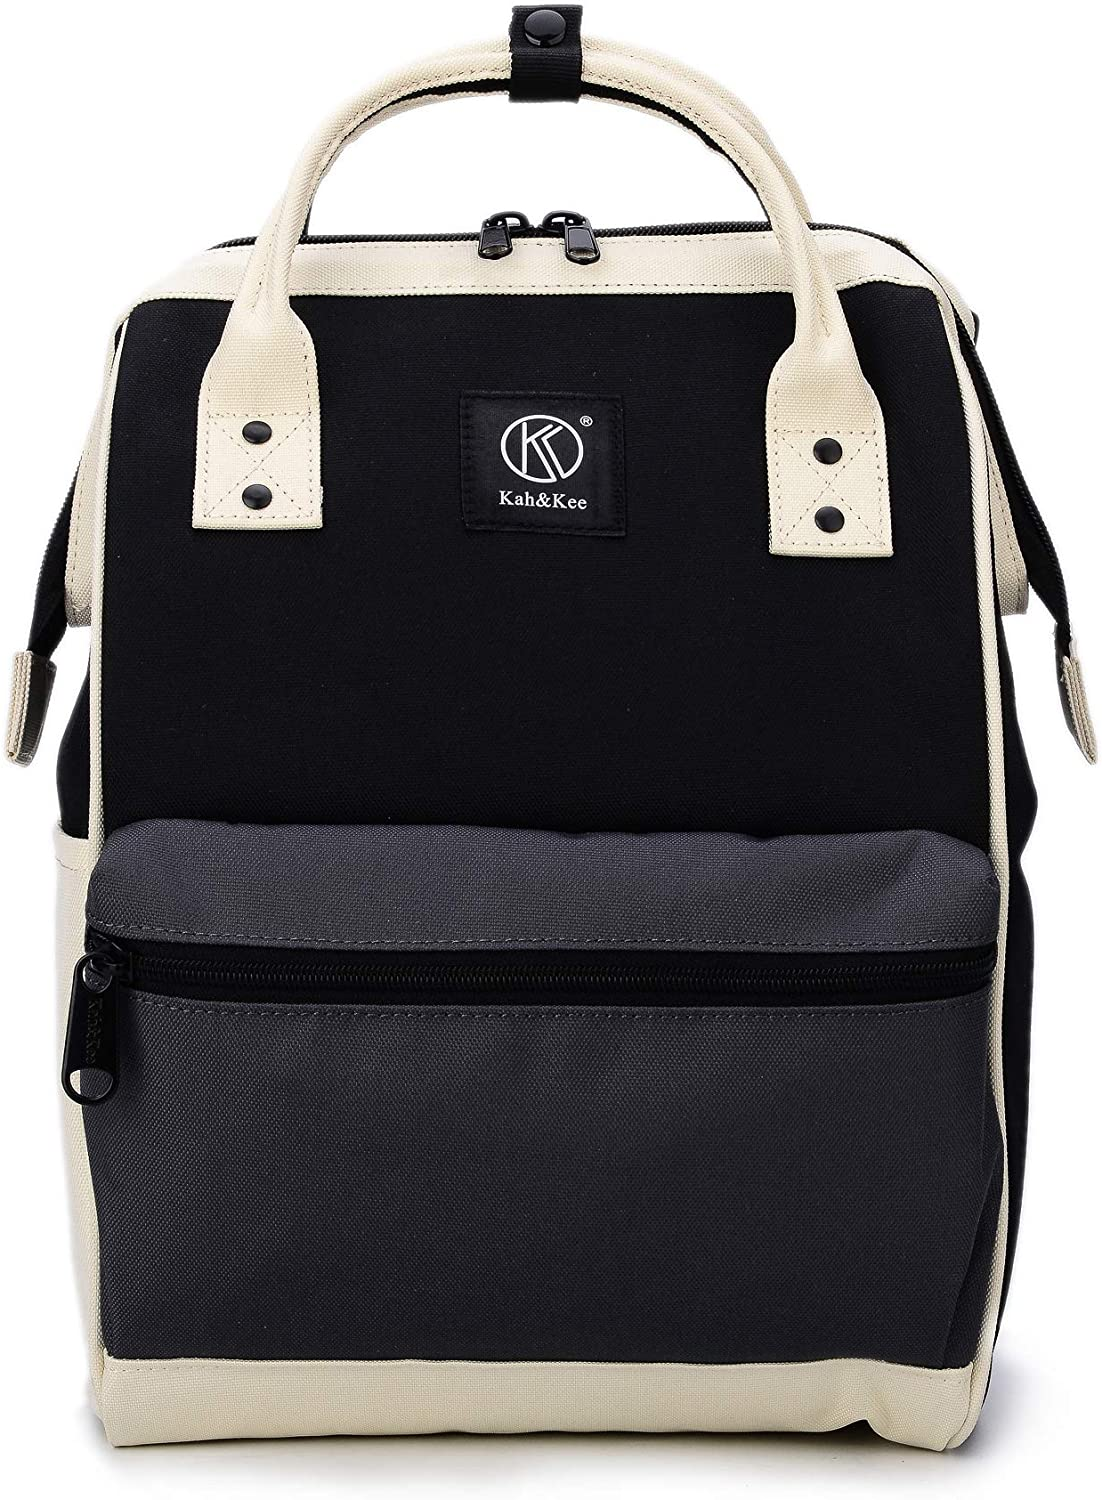 Kah&Kee Polyester Travel Backpack Functional Anti-theft School Laptop for Women Men (Black/Grey, Small)